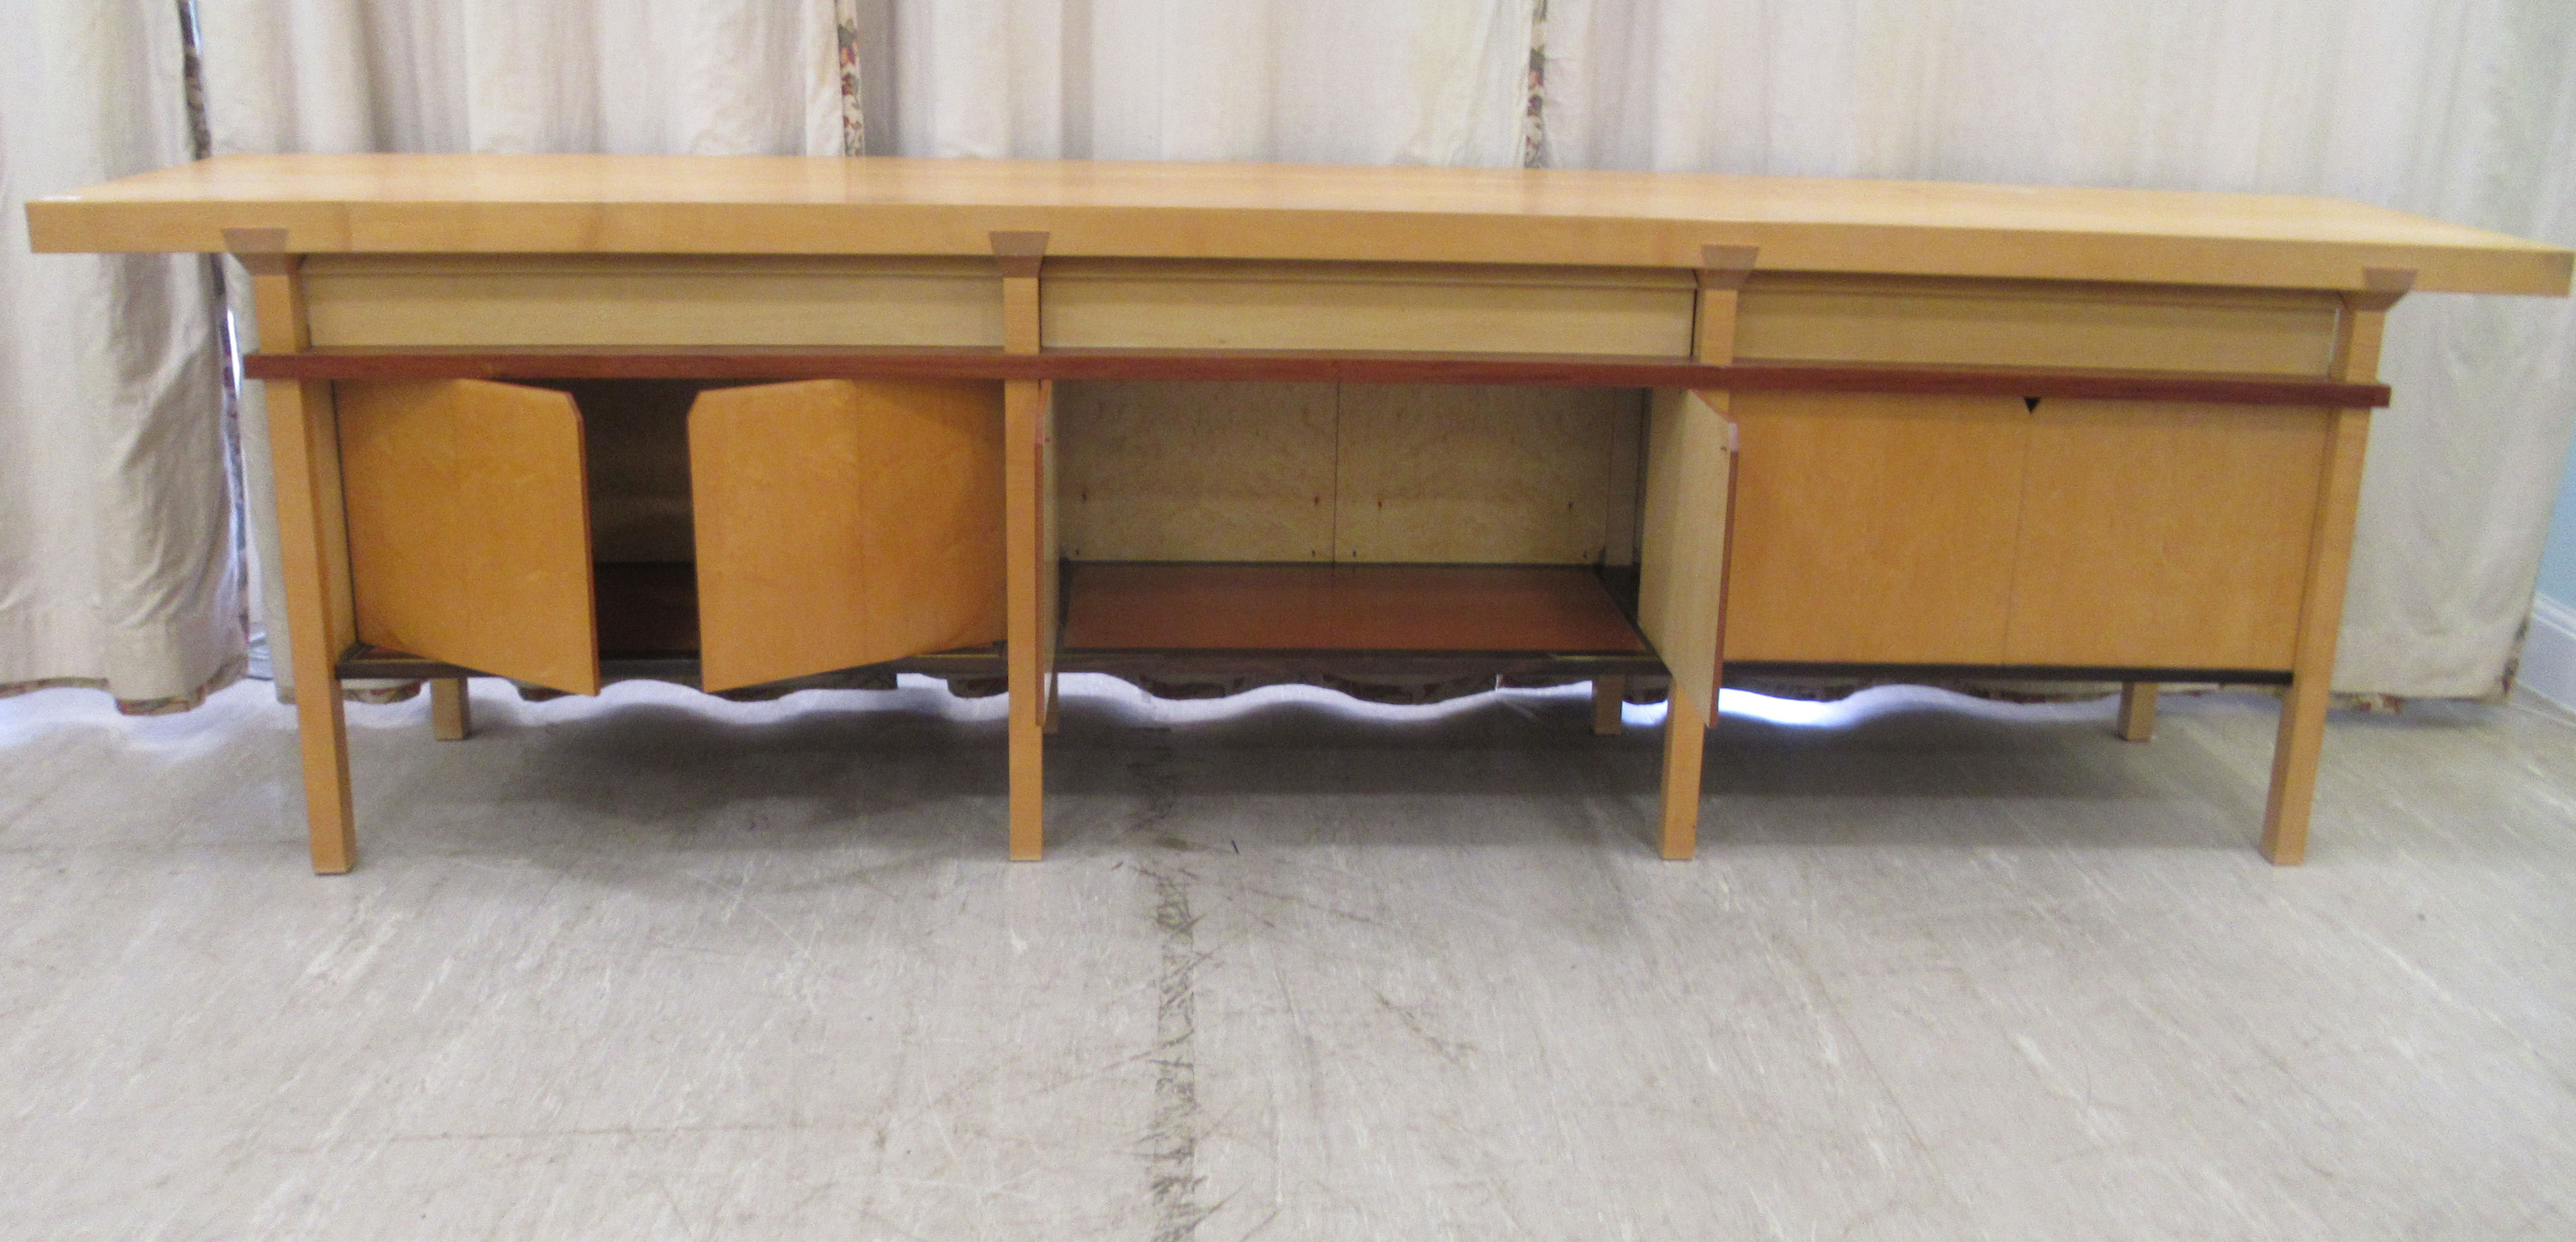 A 1960sJohn Makepeace OBE sideboard, constructed in sycamore, Andaman padauk and holly, - Image 9 of 12